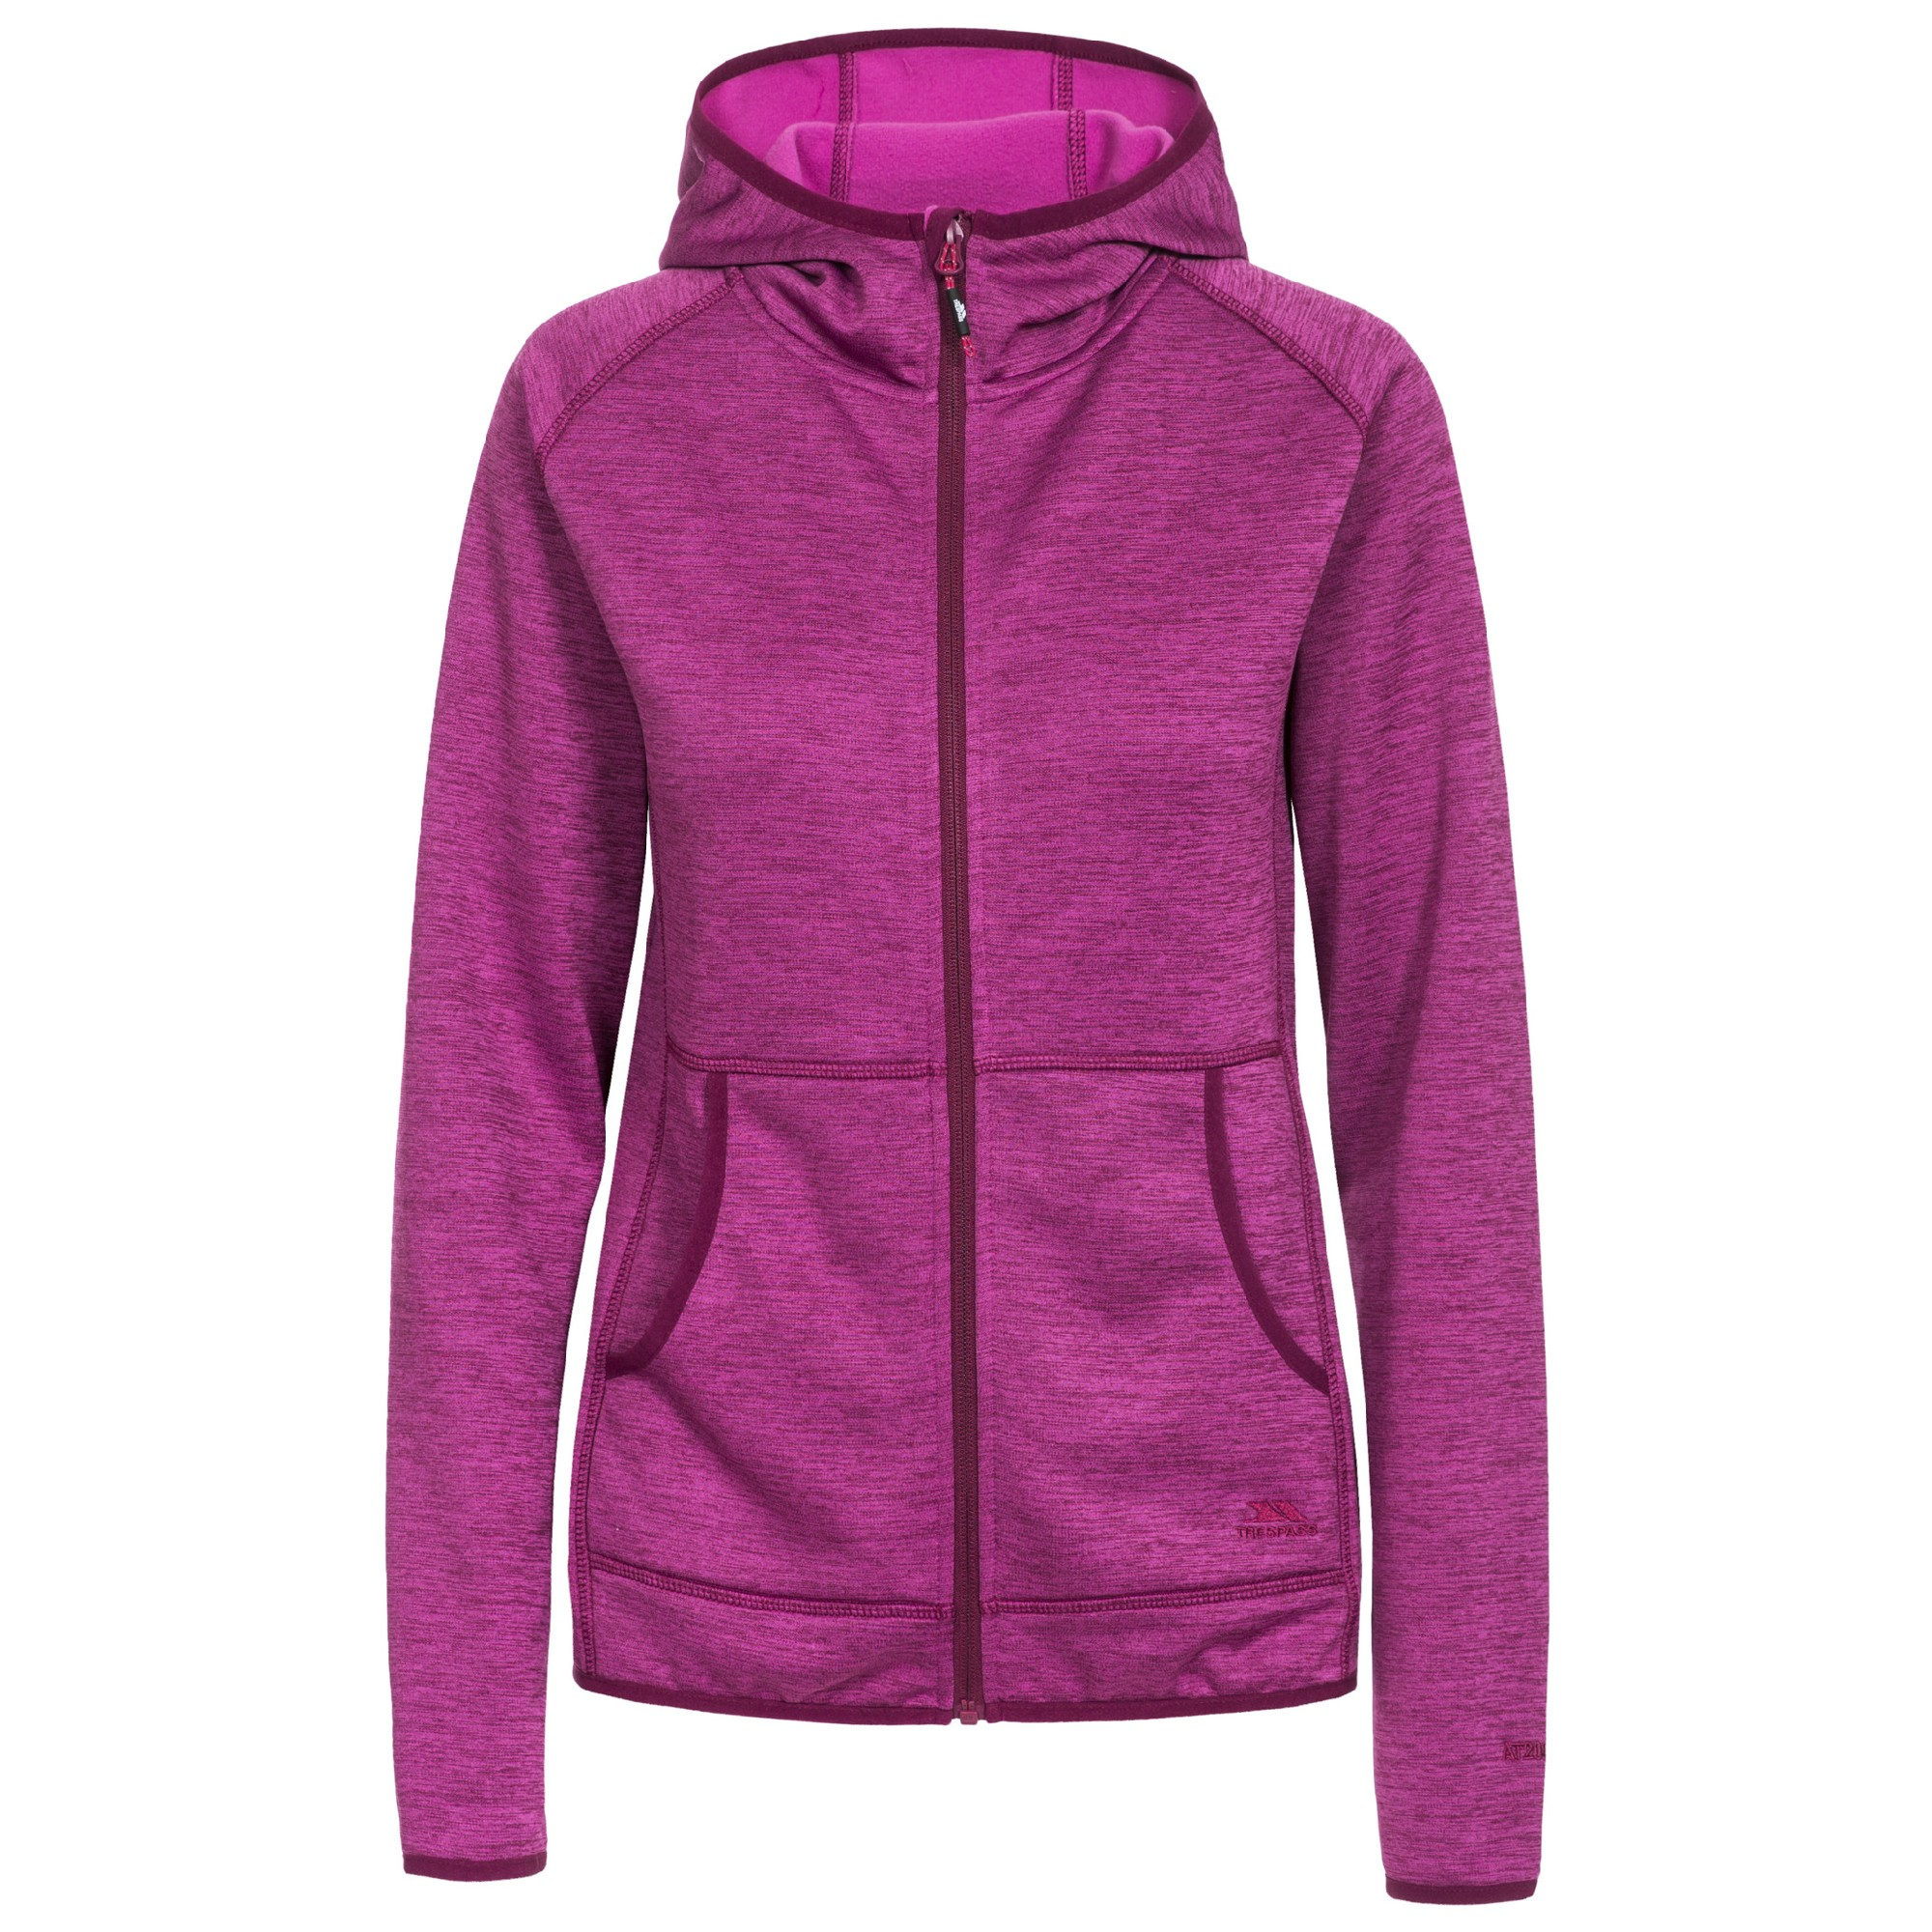 Trespass-Womens-Ladies-Youri-Full-Zip-Fleece-TP4035